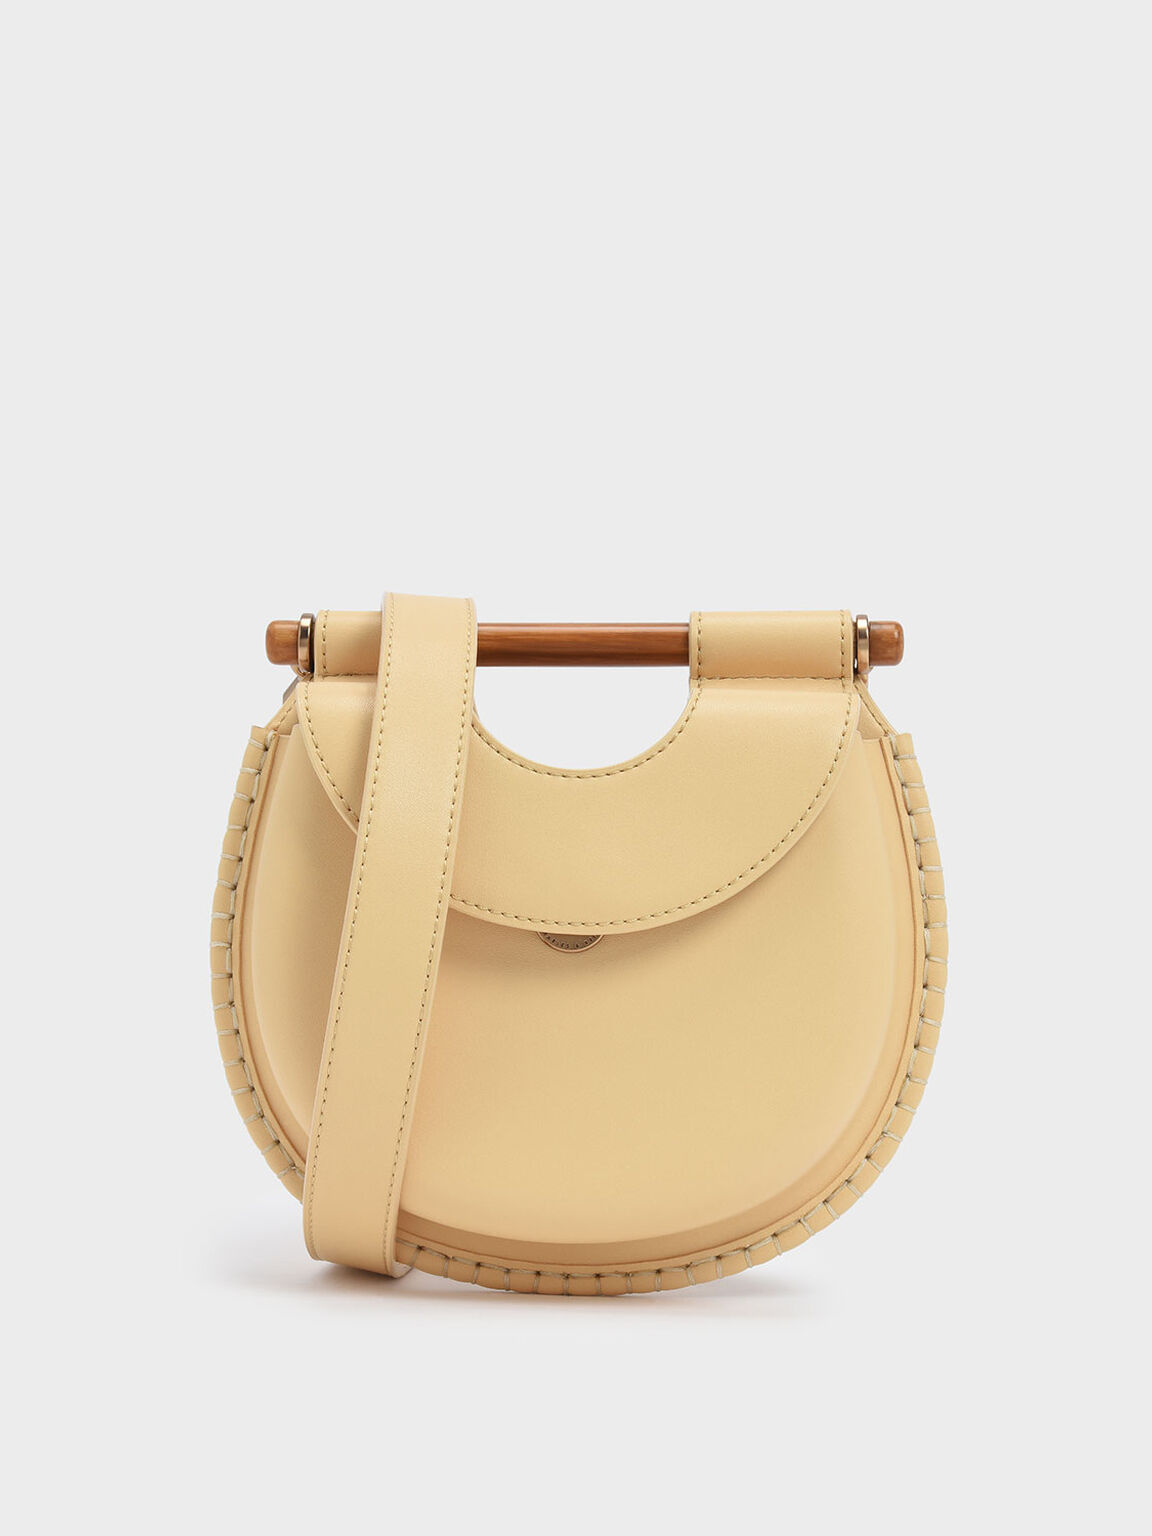 Wood-Effect Handle Whipstitch Trim Bag, Yellow, hi-res